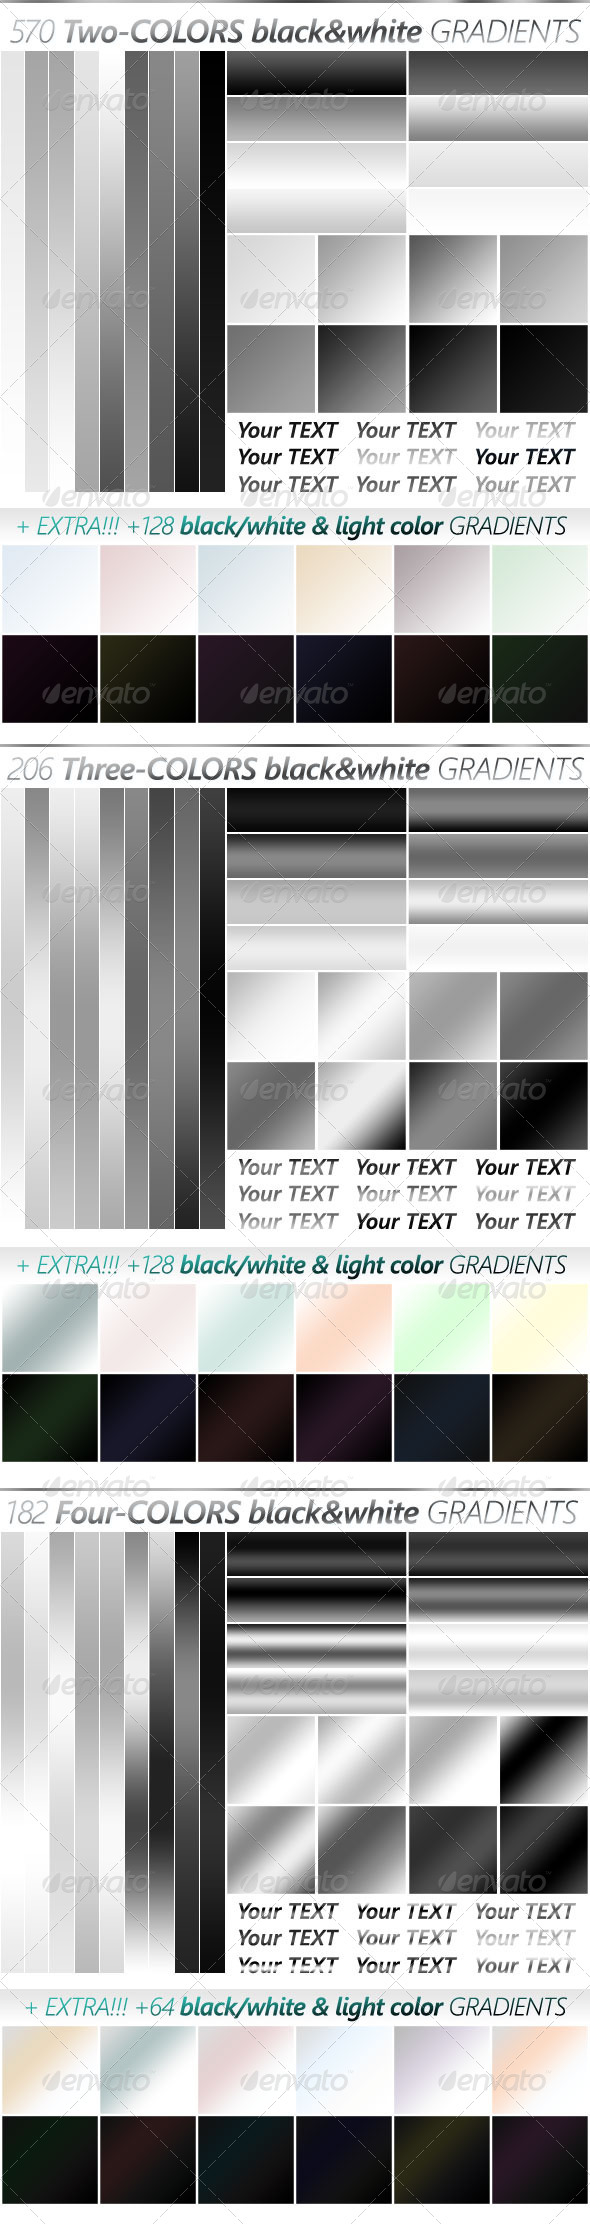 The Ultimate Black & White Gradients Collection - Photoshop Add-ons